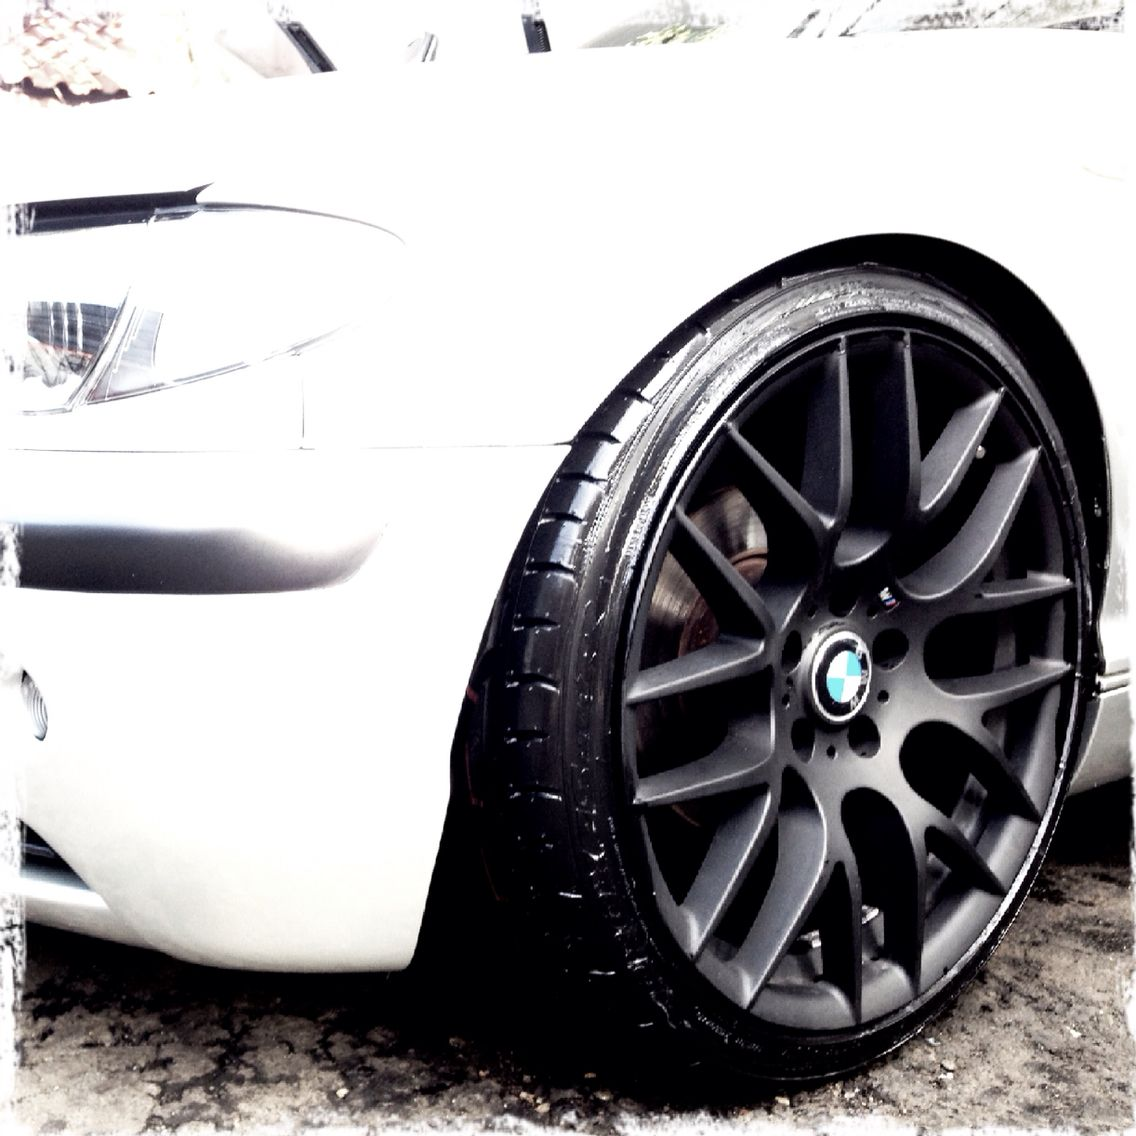 black rims for e46 318i bmw m 39 cars cars bmw 318i. Black Bedroom Furniture Sets. Home Design Ideas